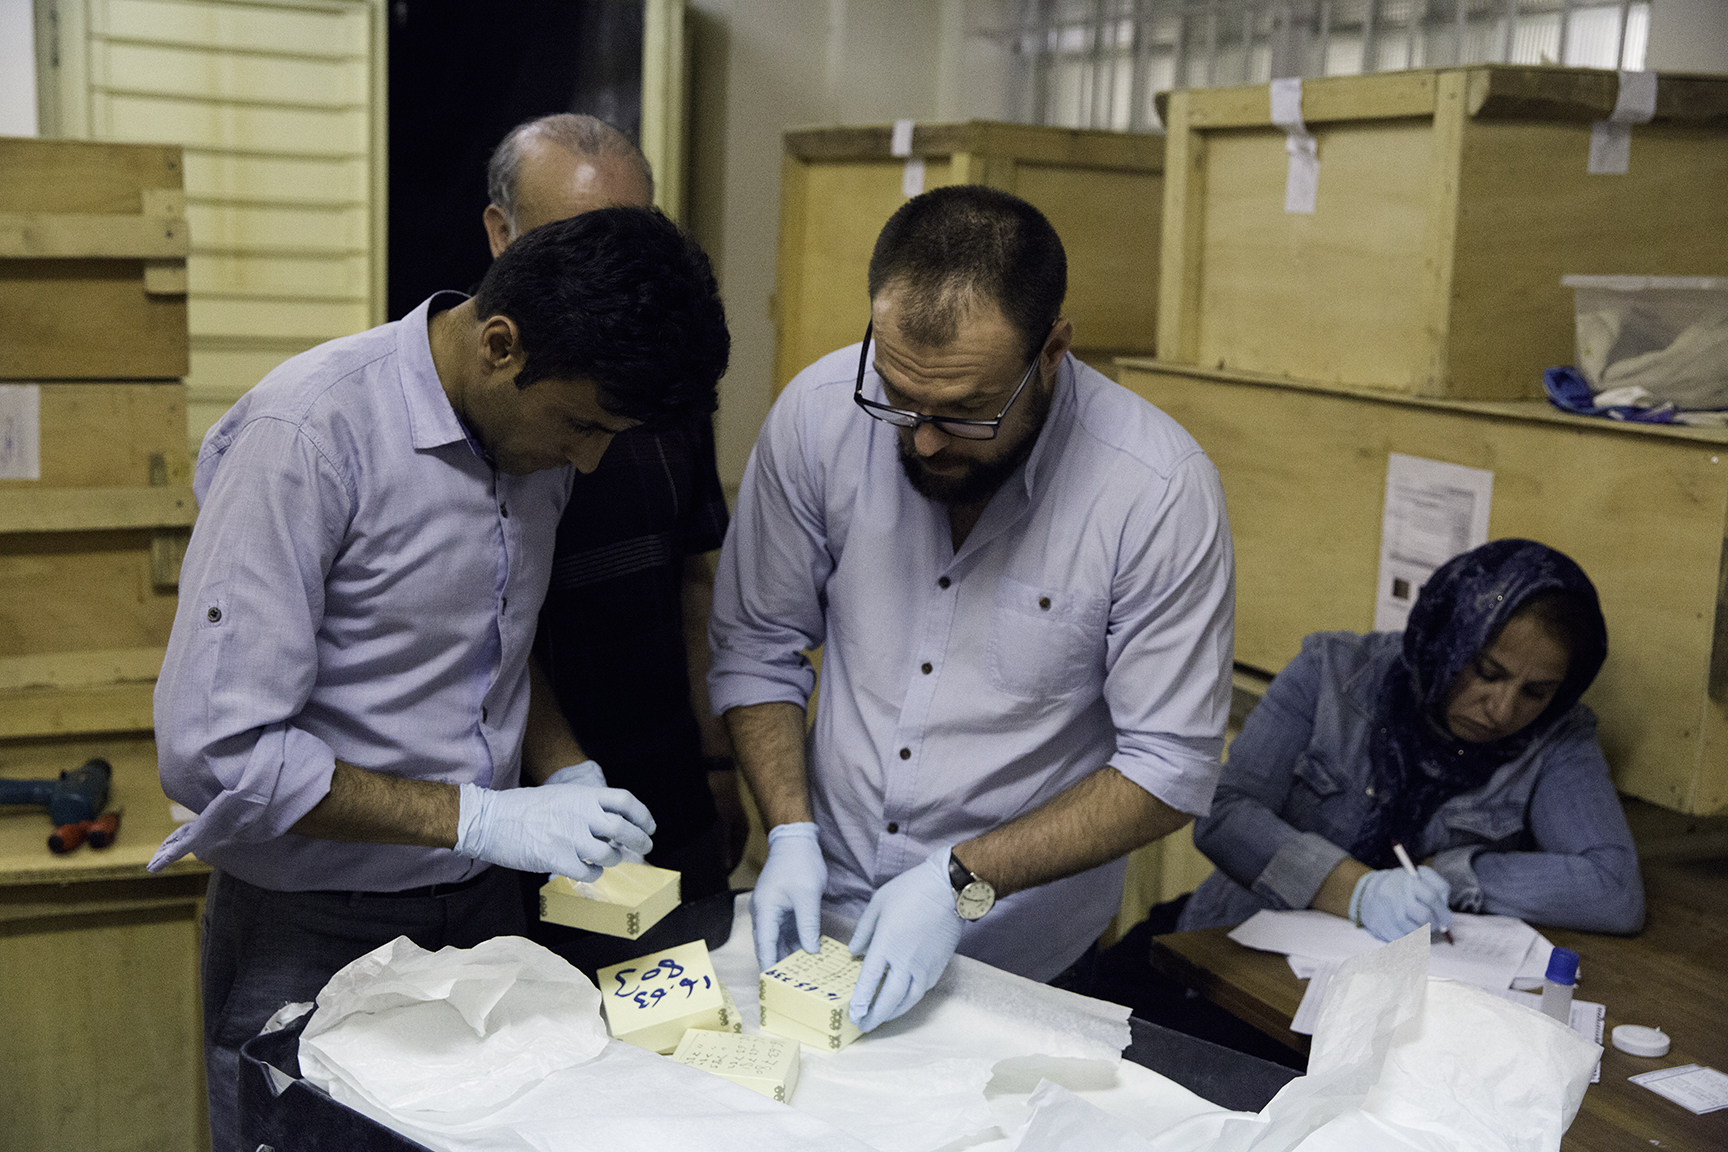 Field Director Alejandro Gallego Lopez, from the University of Chicago's Oriental Institute, leads a team of Afghan and international museum specialists and conservators who are cataloging thousands of artifacts from Hadda destroyed by the Taliban.